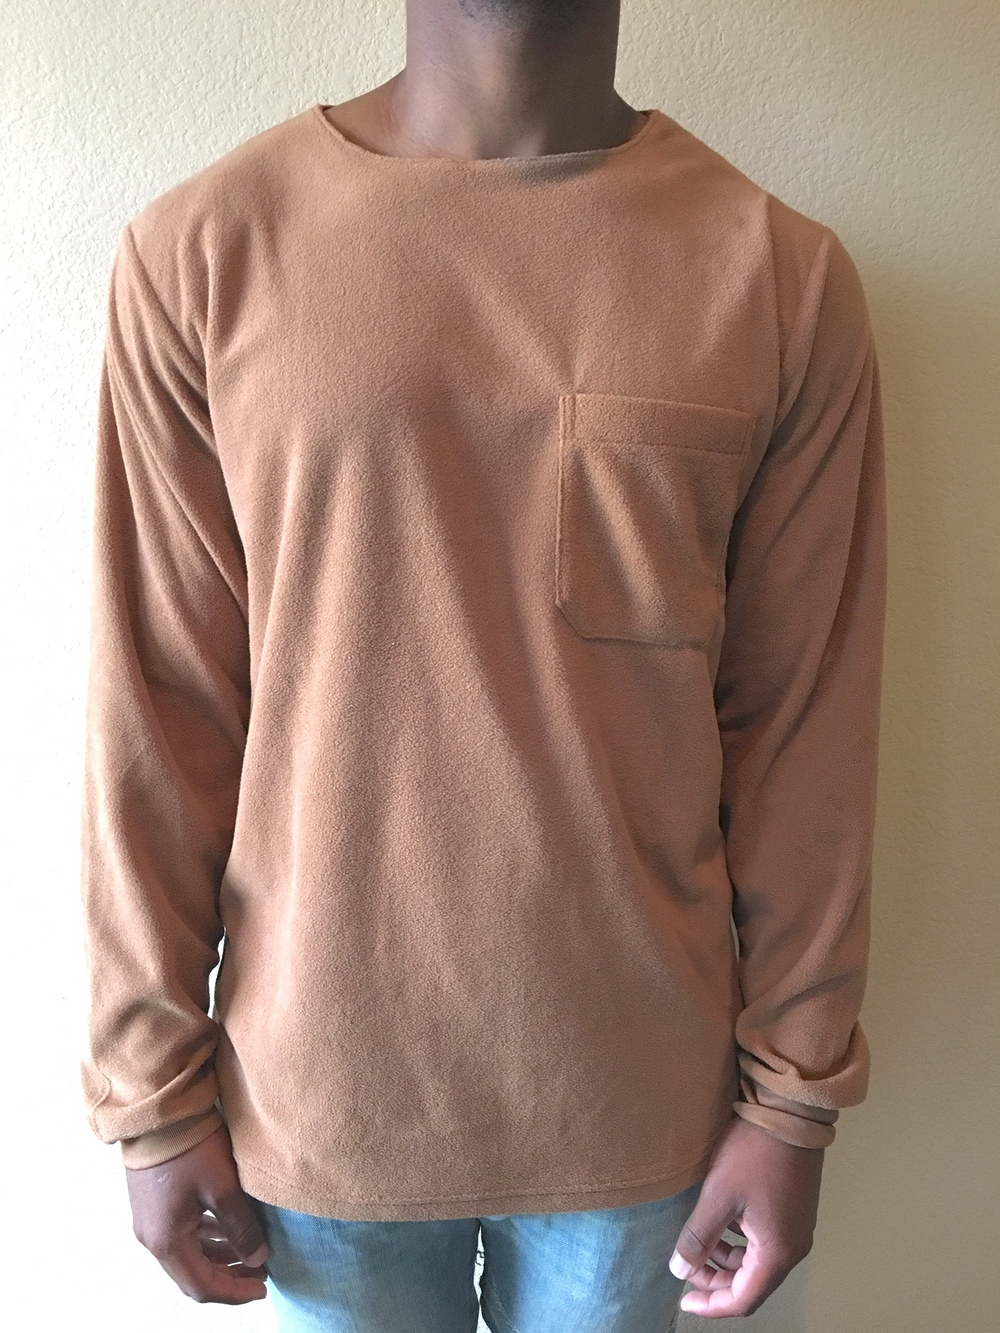 Camel Sweater.jpg